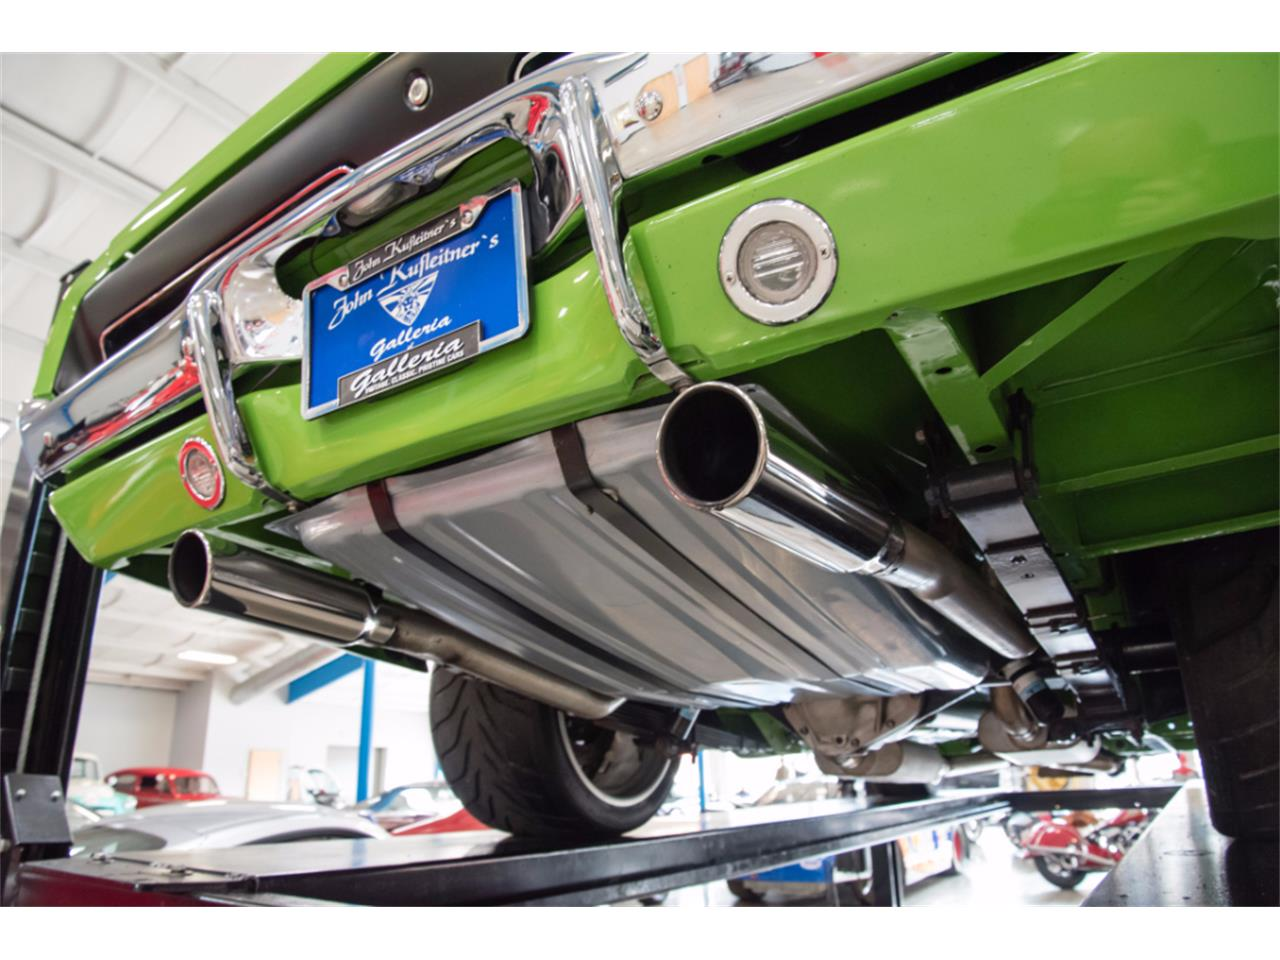 Large Picture of Classic 1970 Dodge Charger located in Ohio Offered by John Kufleitner's Galleria - MB1Z